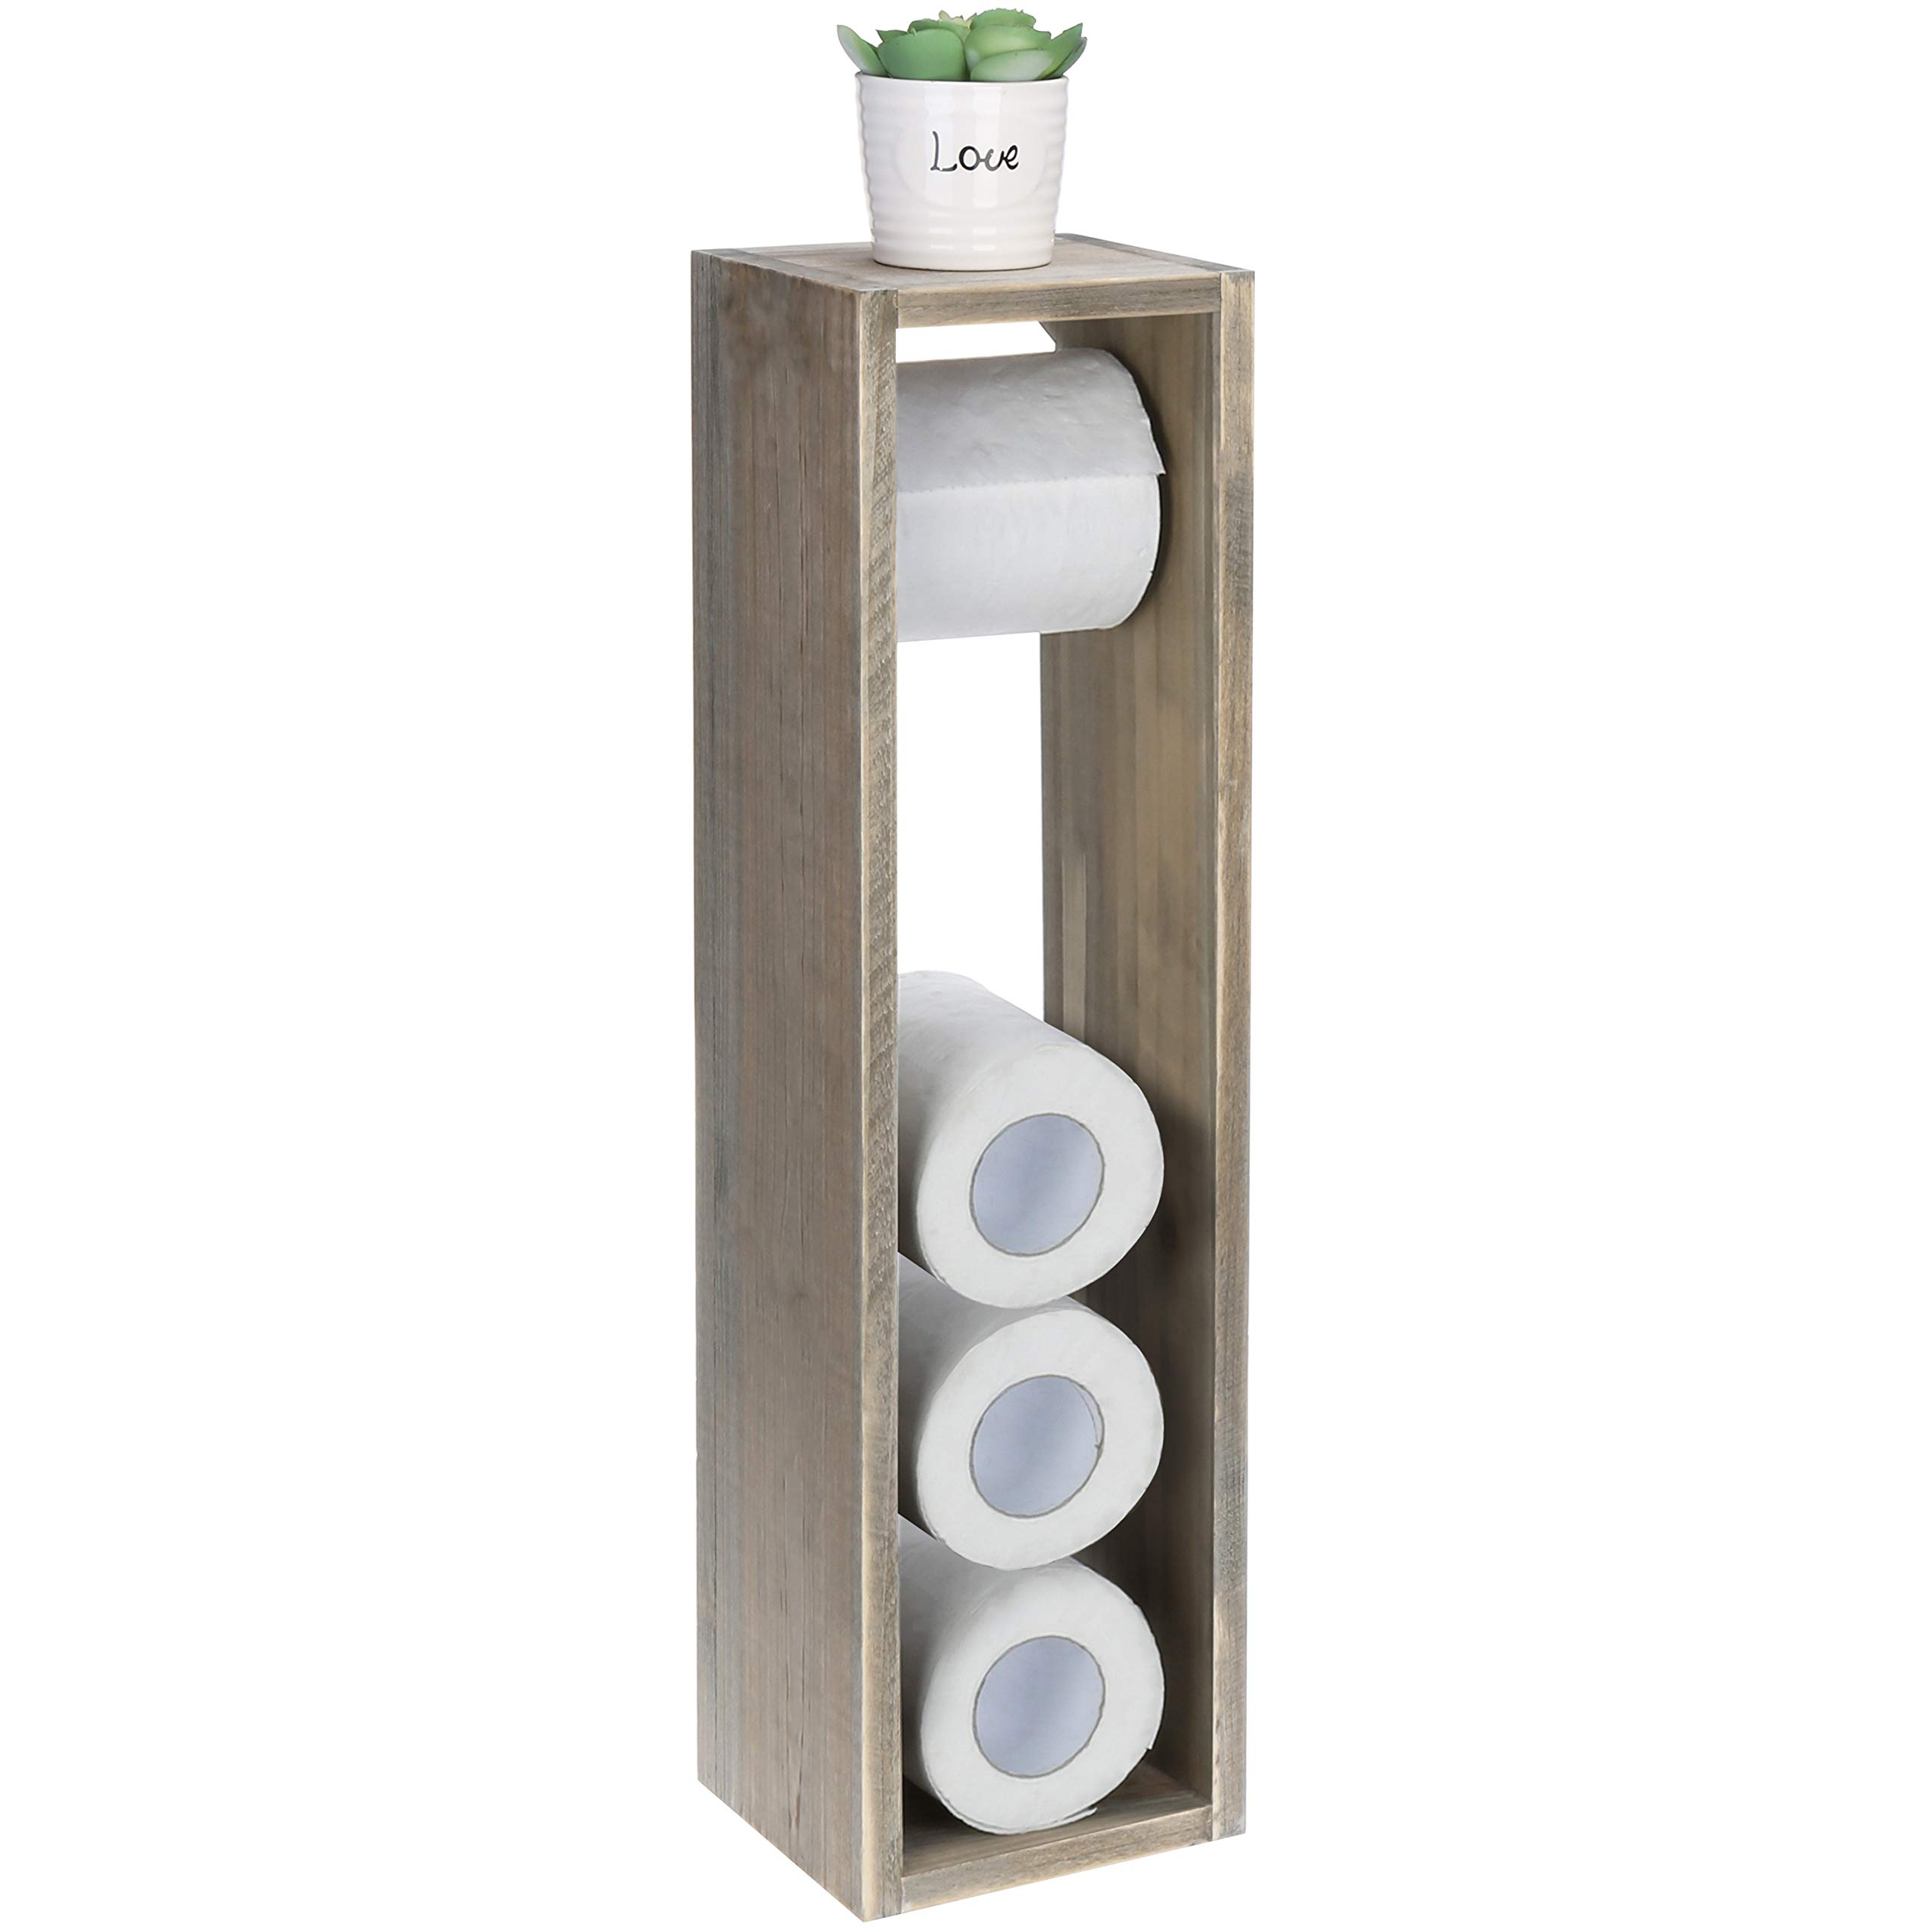 MyGift Rustic Grey Wood Toilet Paper Roll Dispenser & Storage Stand